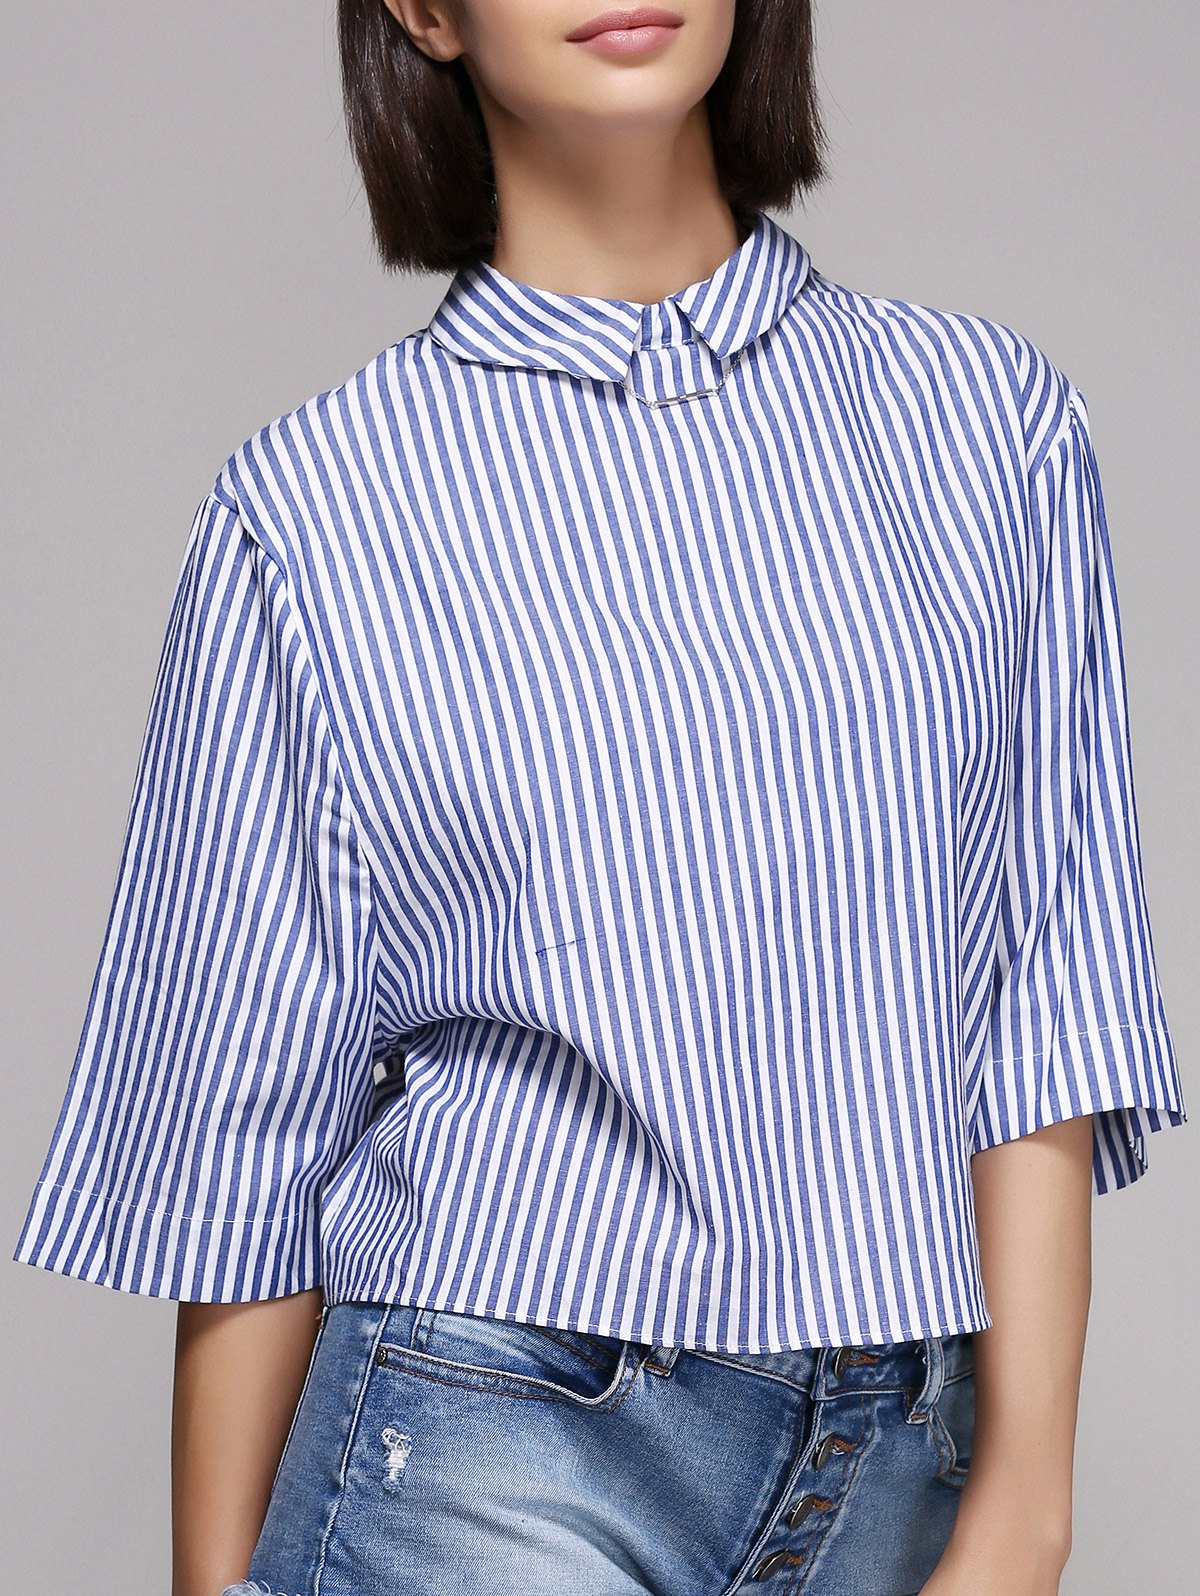 Stylish Pinstriped Flat Collar 3/4 Sleeve Blouse For Women